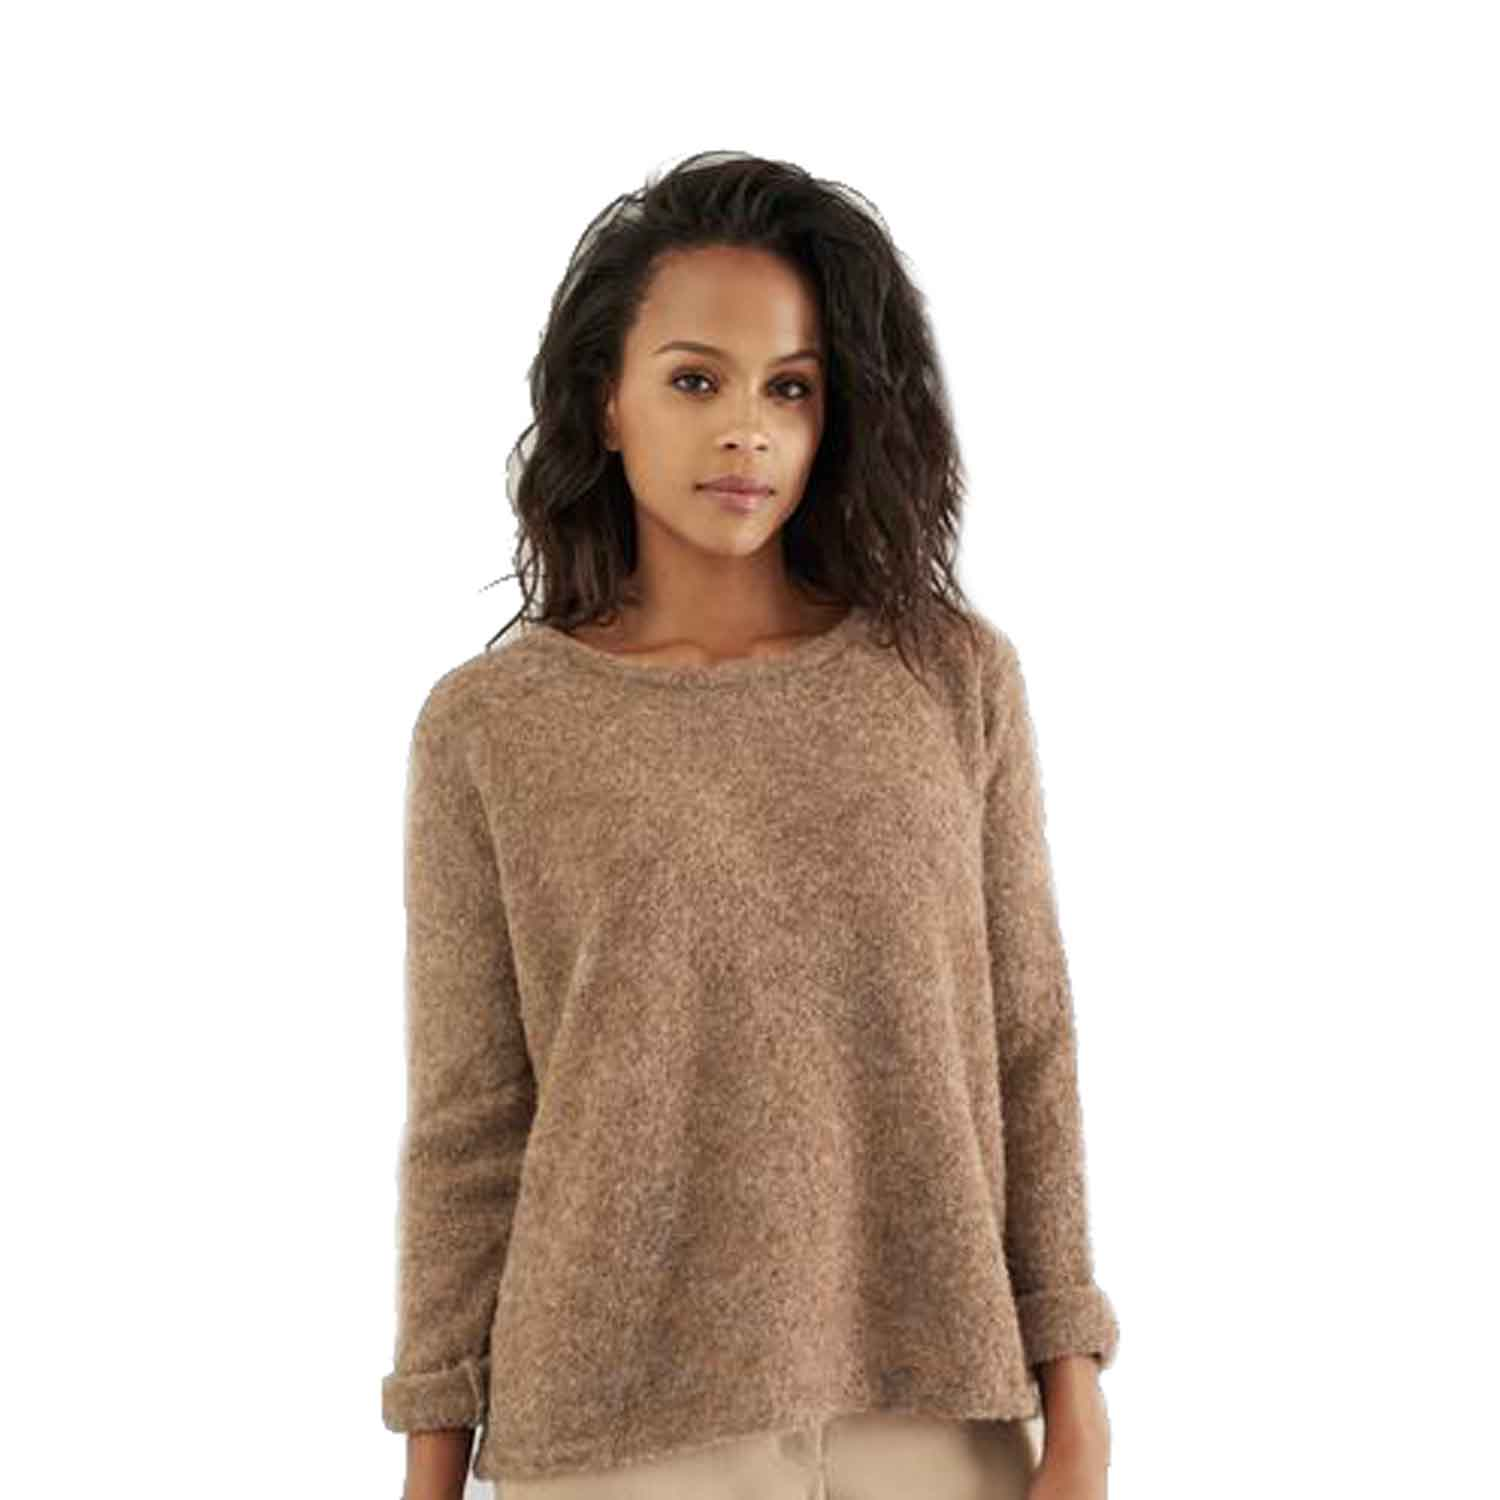 Boxy Pullover Sweater,   HOPE MADE  $96